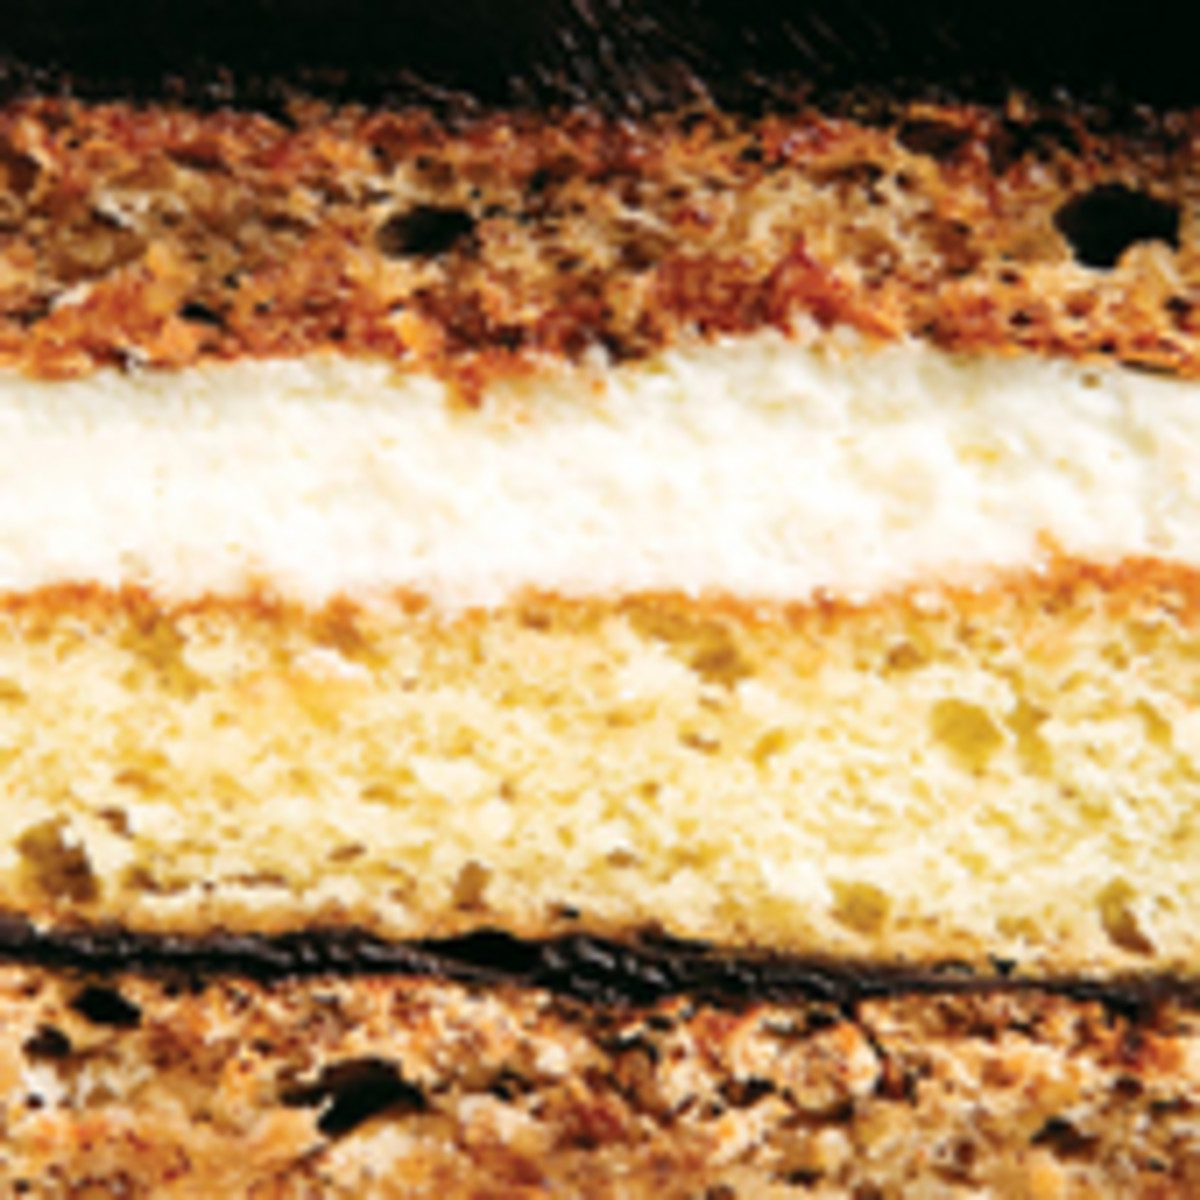 Cross Section of Marjolaine Cake layers.